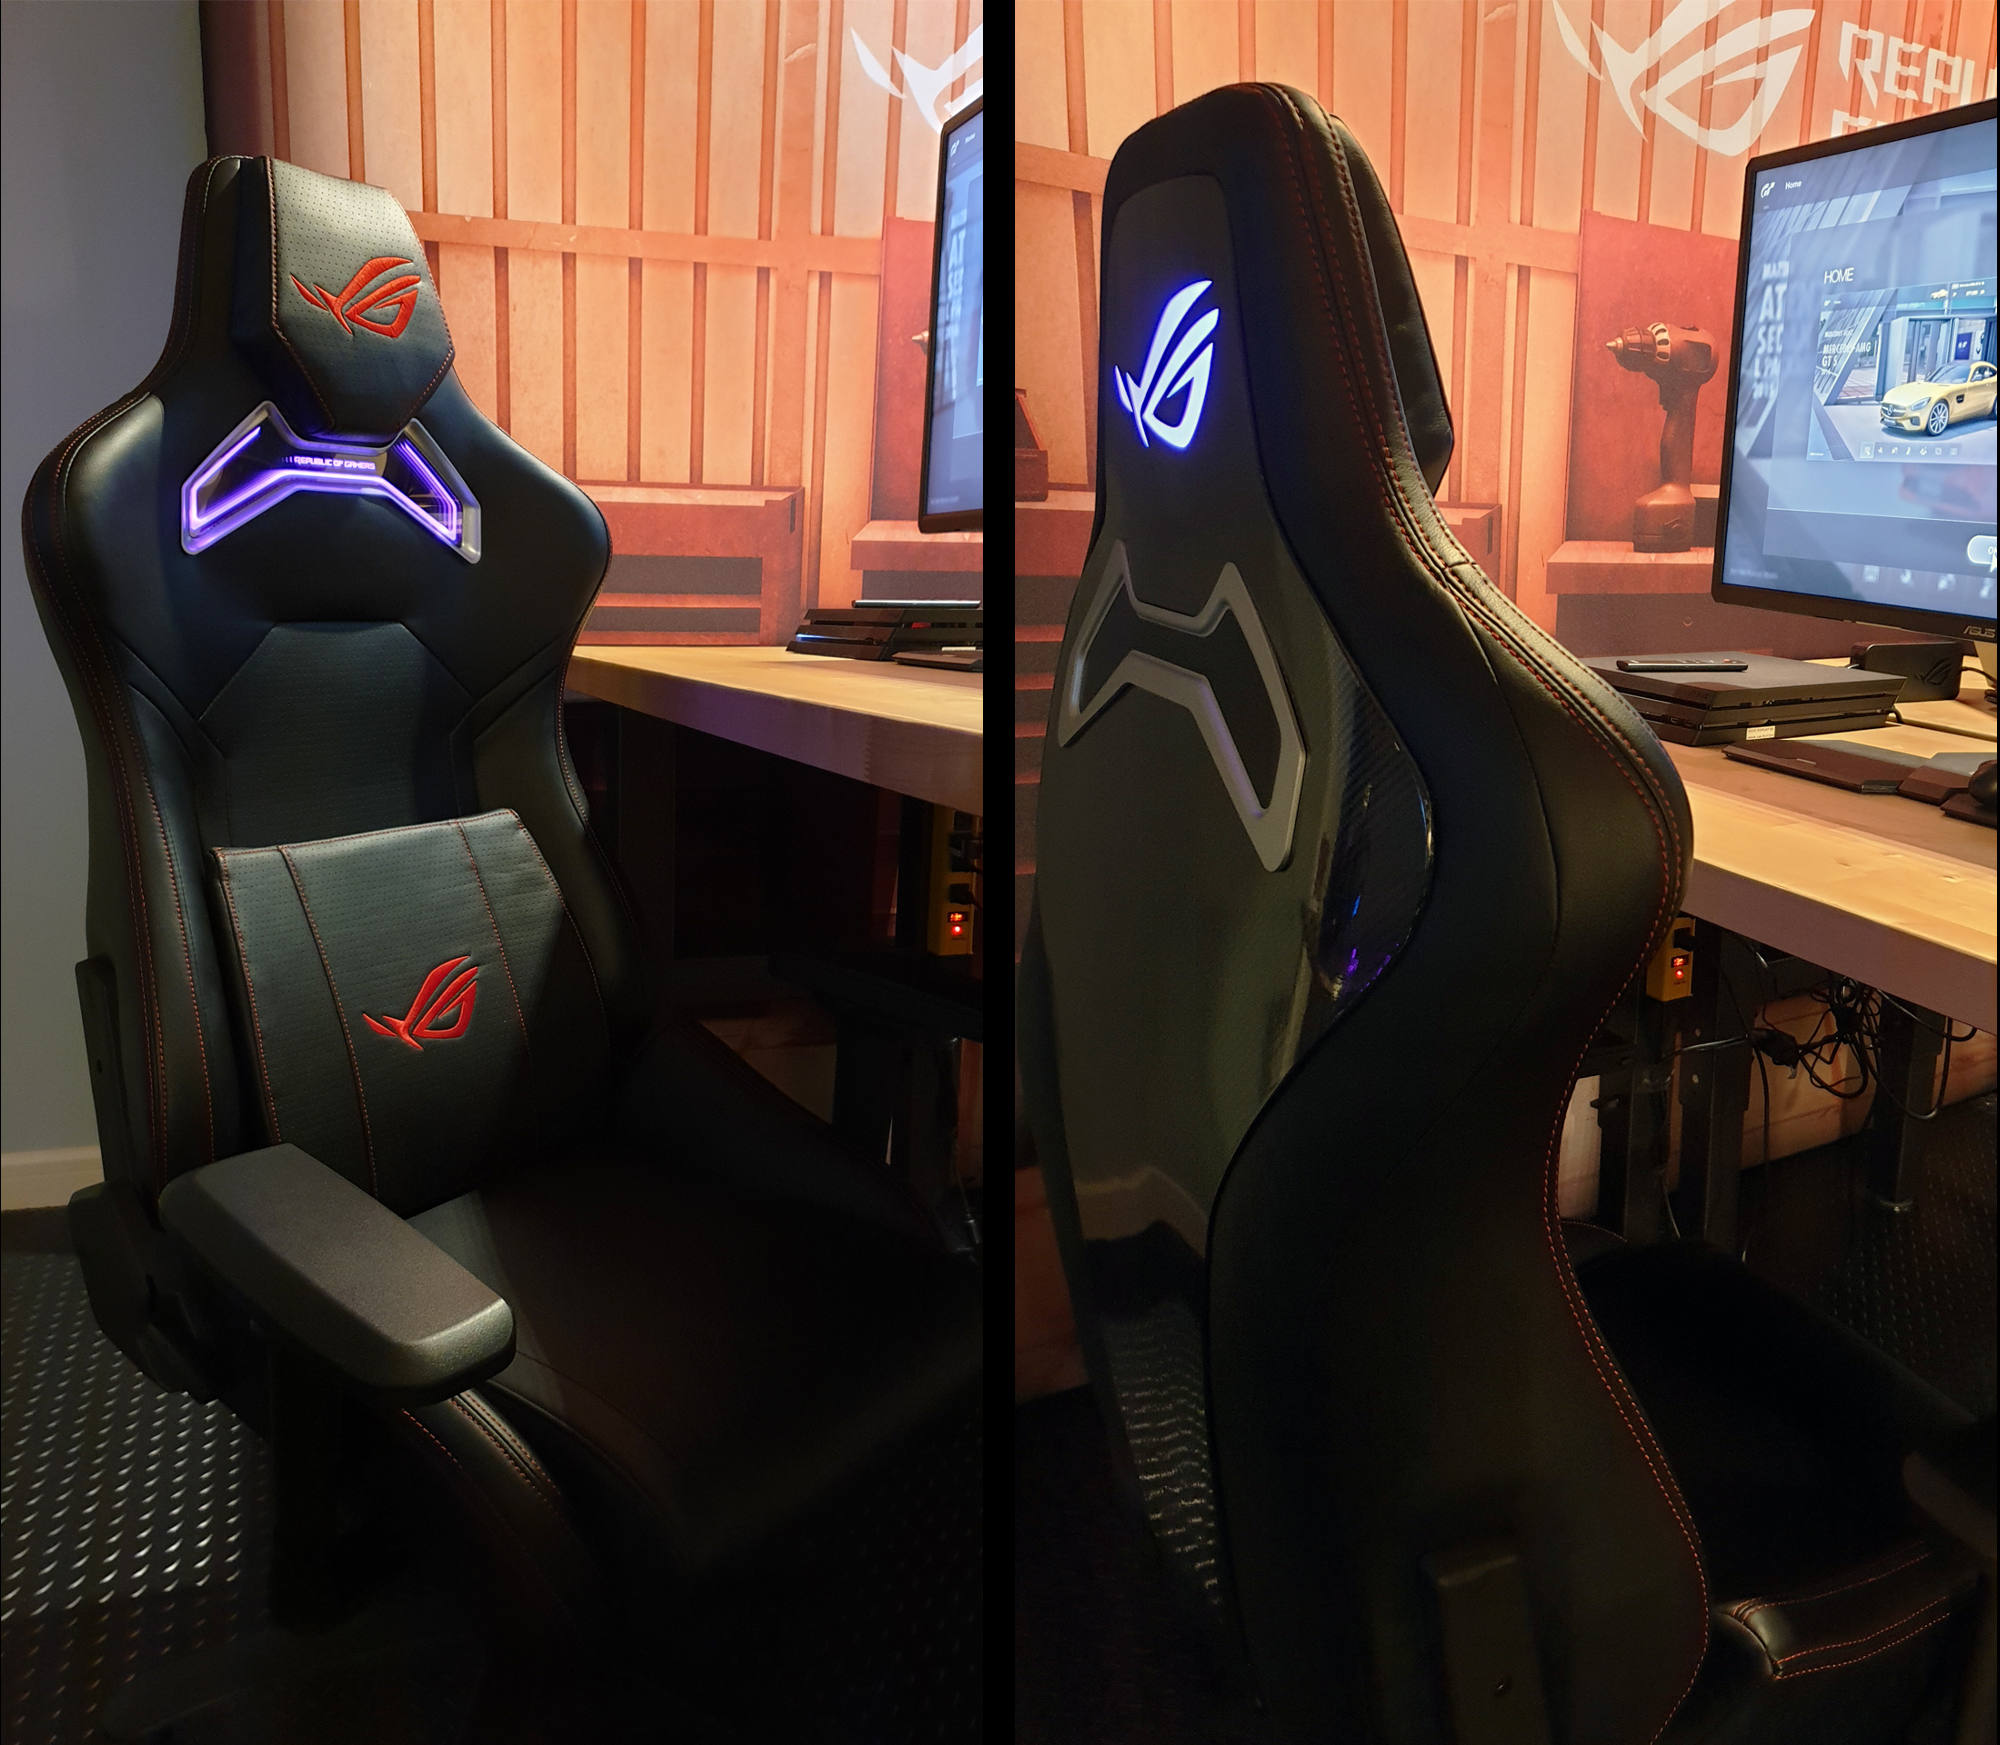 Miraculous The Rog Chariot Gaming Chair Is Decked Out In Rgb Lighting Unemploymentrelief Wooden Chair Designs For Living Room Unemploymentrelieforg